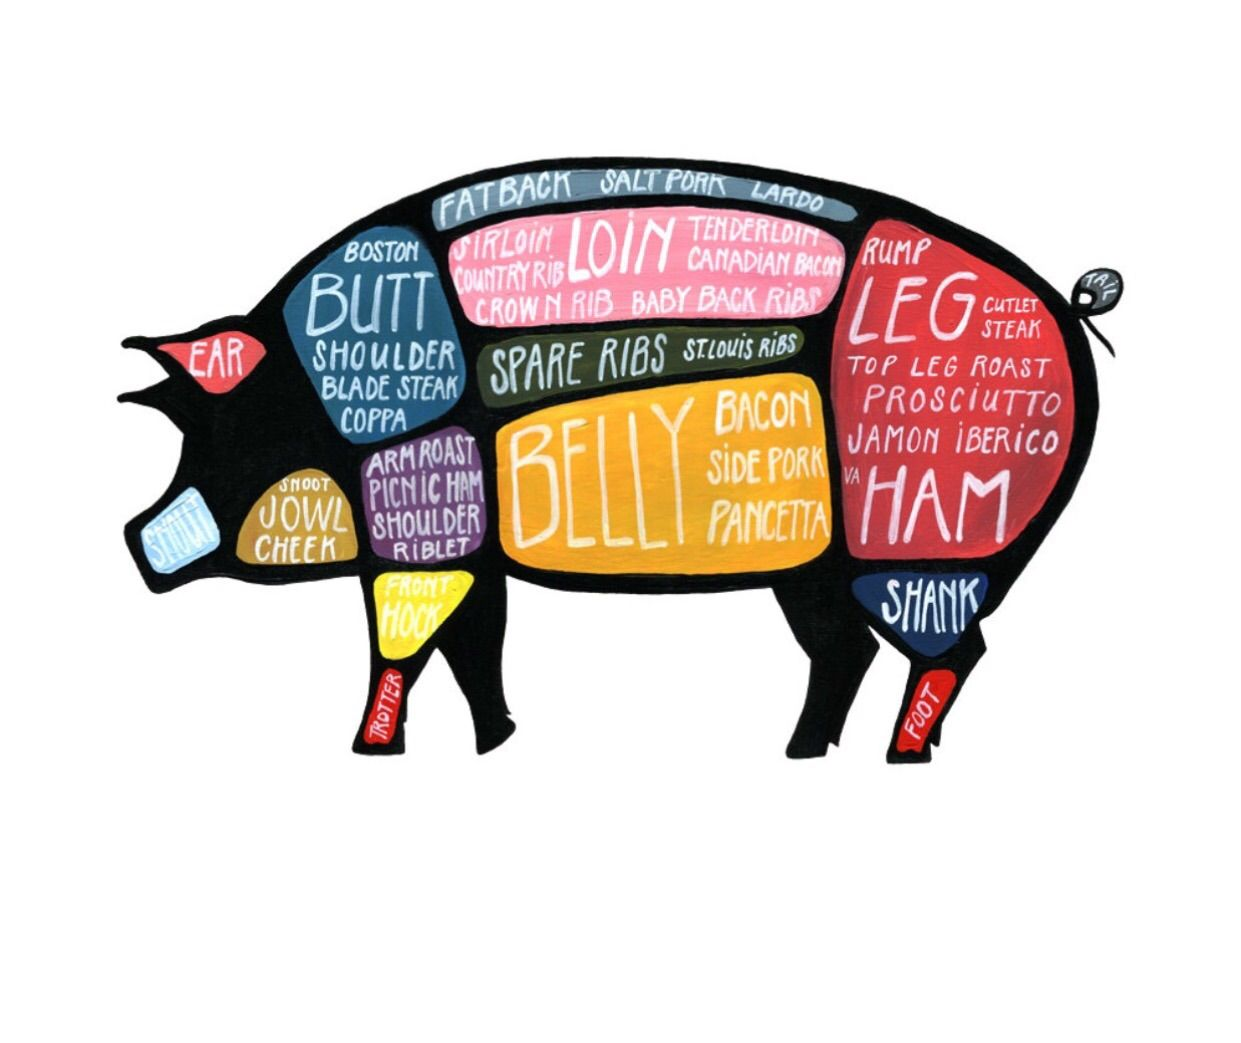 hight resolution of pig butcher diagram use every part of the pig detailed cuts of use every part pig diagram